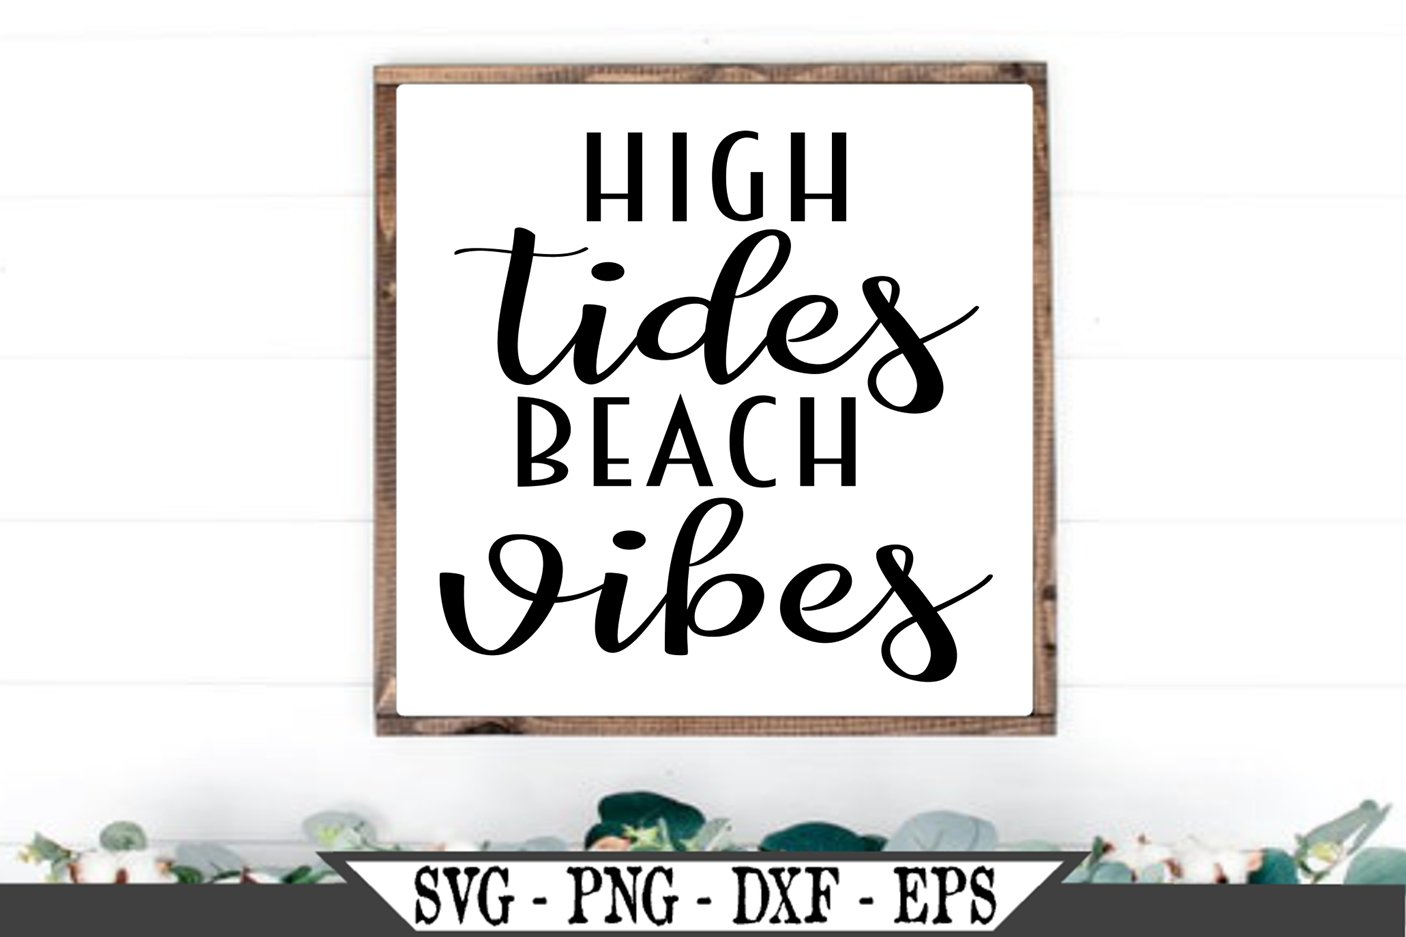 High Tides Beach Vibes SVG example image 1